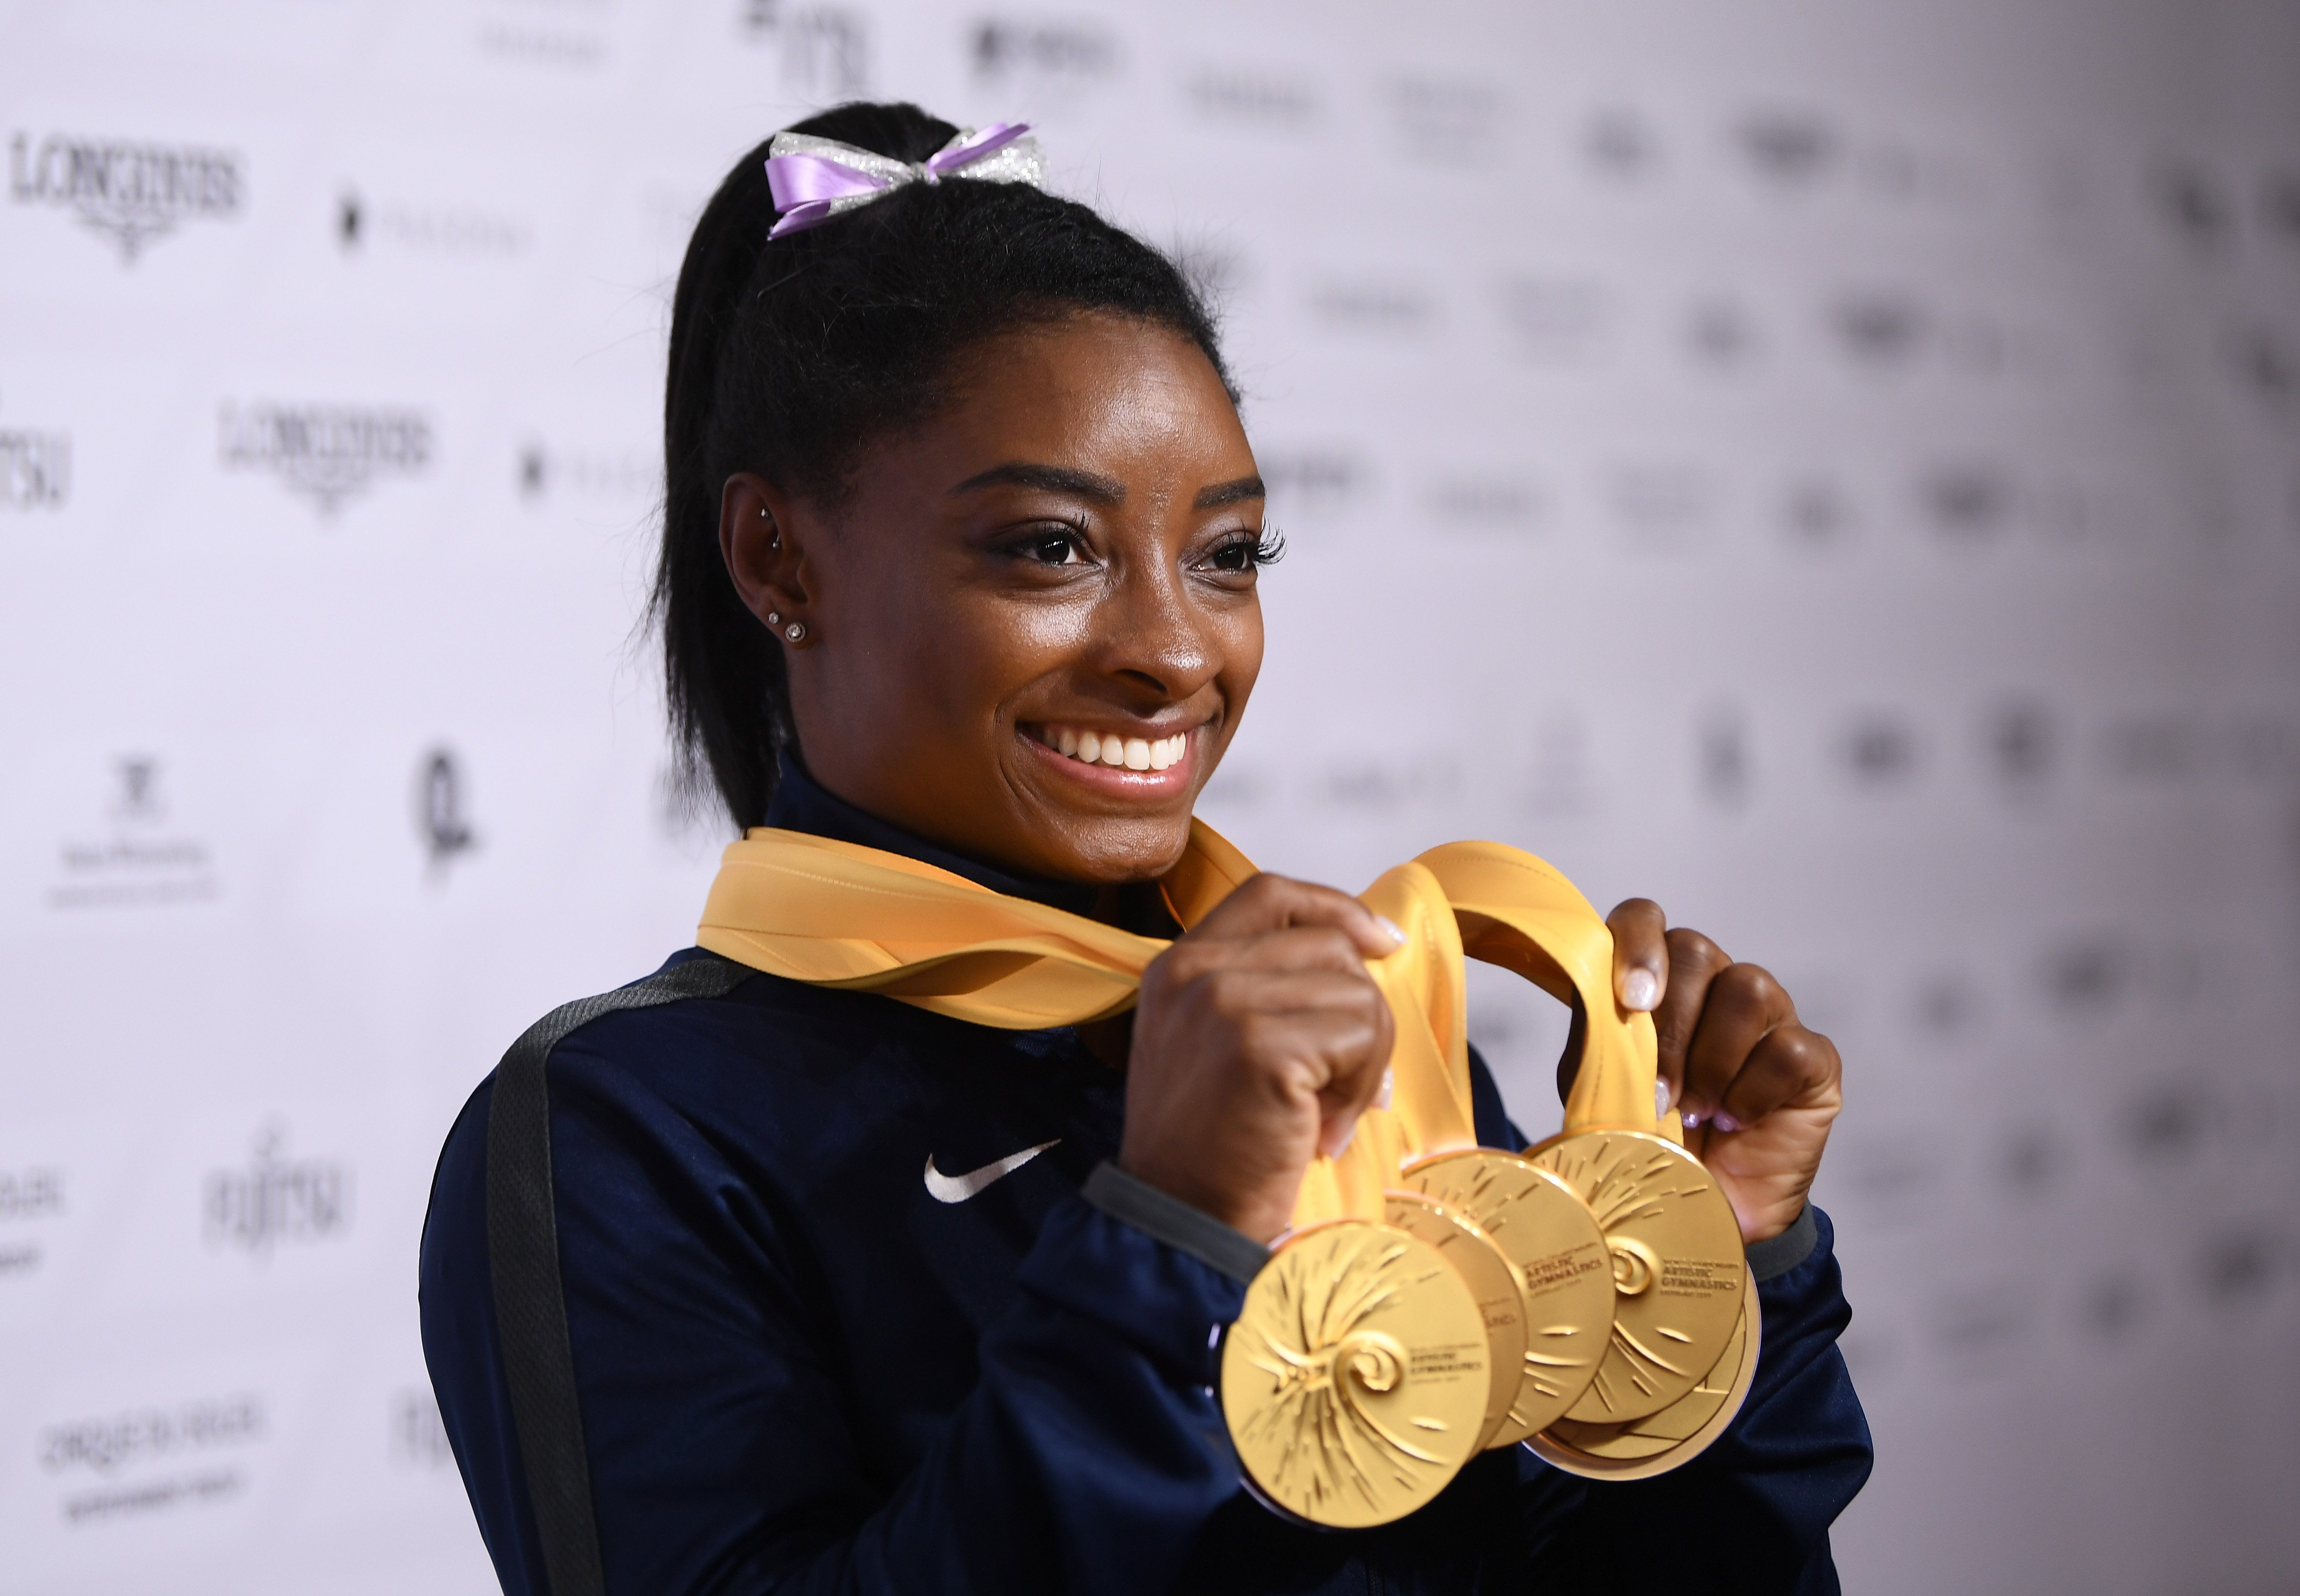 Simone Biles poses with her Medals at the FIG Artistic Gymnastics World Championships on Oct. 13, 2019 in Stuttgart, Germany. | Photo: Getty Images